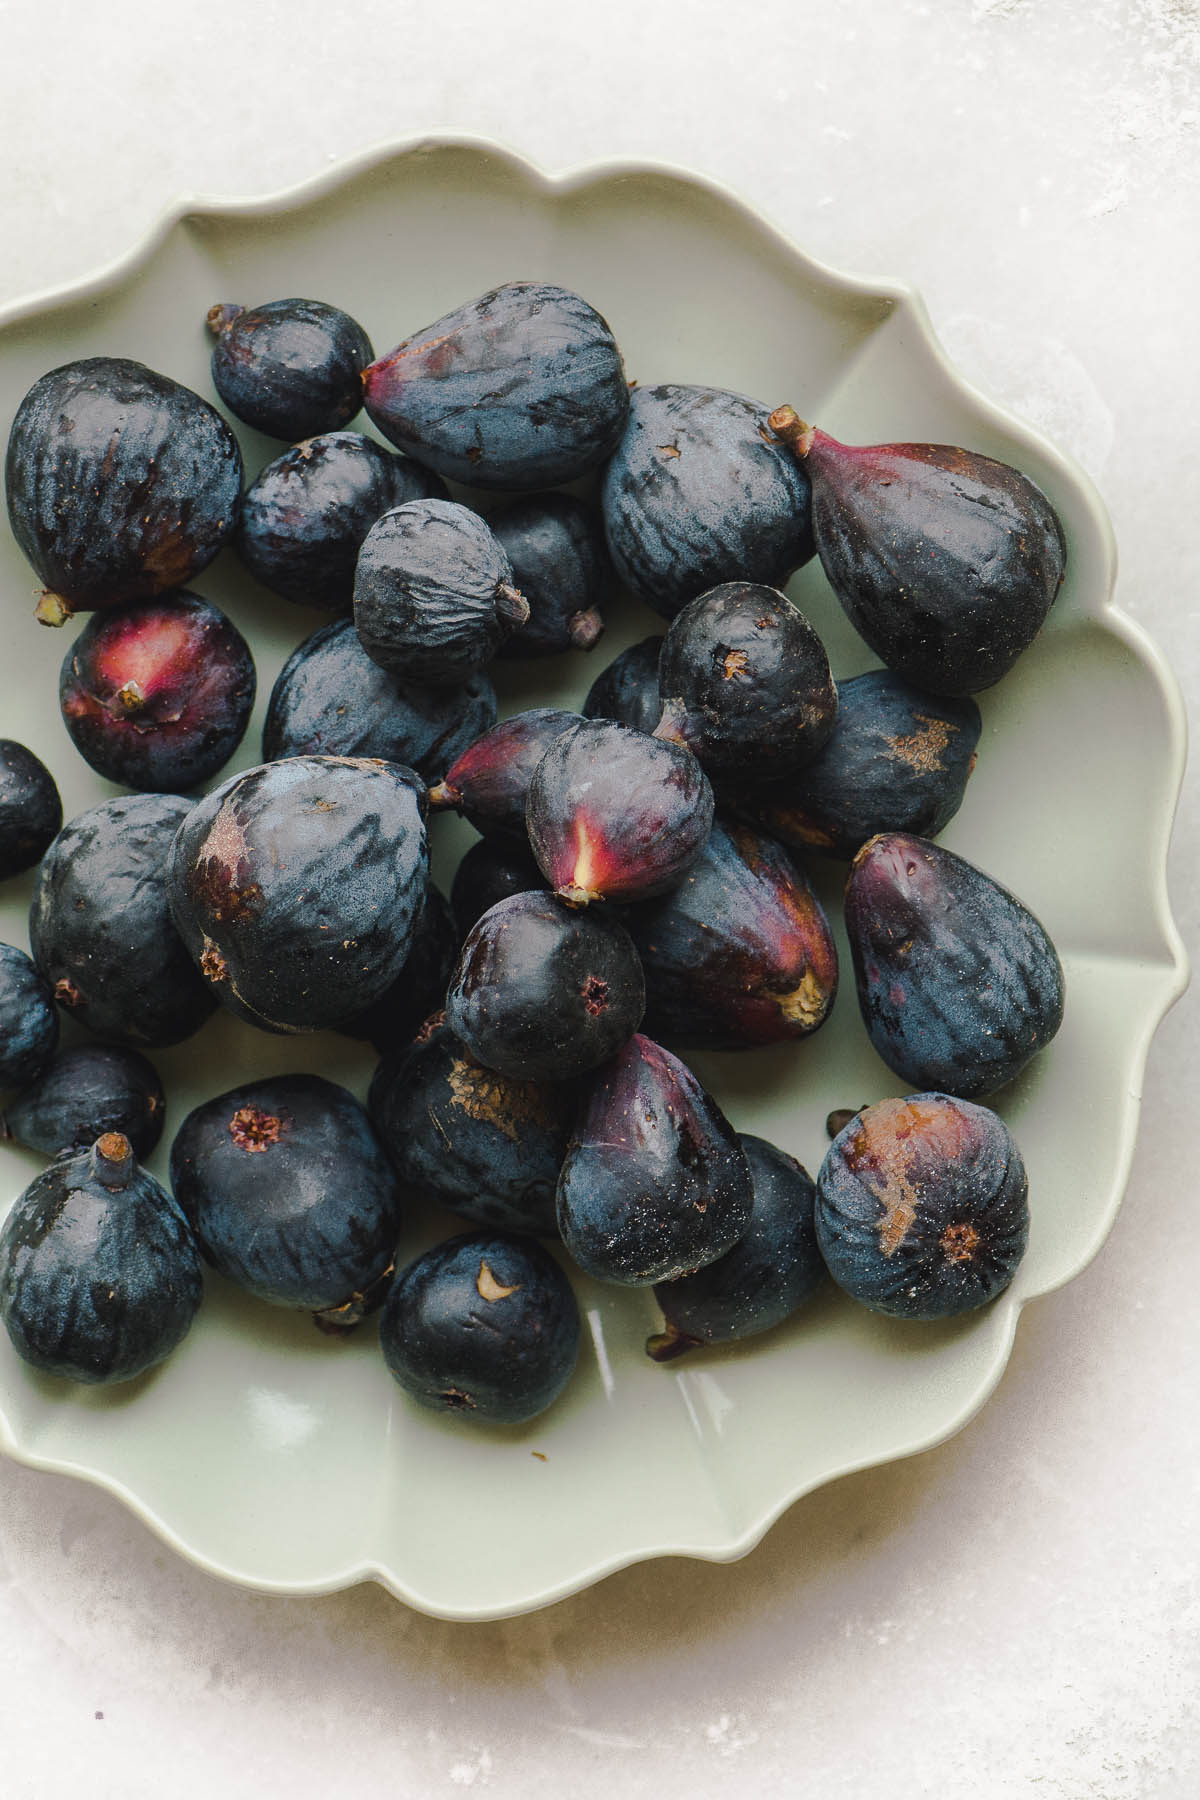 Black Mission figs in a green bowl ready to be sliced for a fig tart with lavender honey